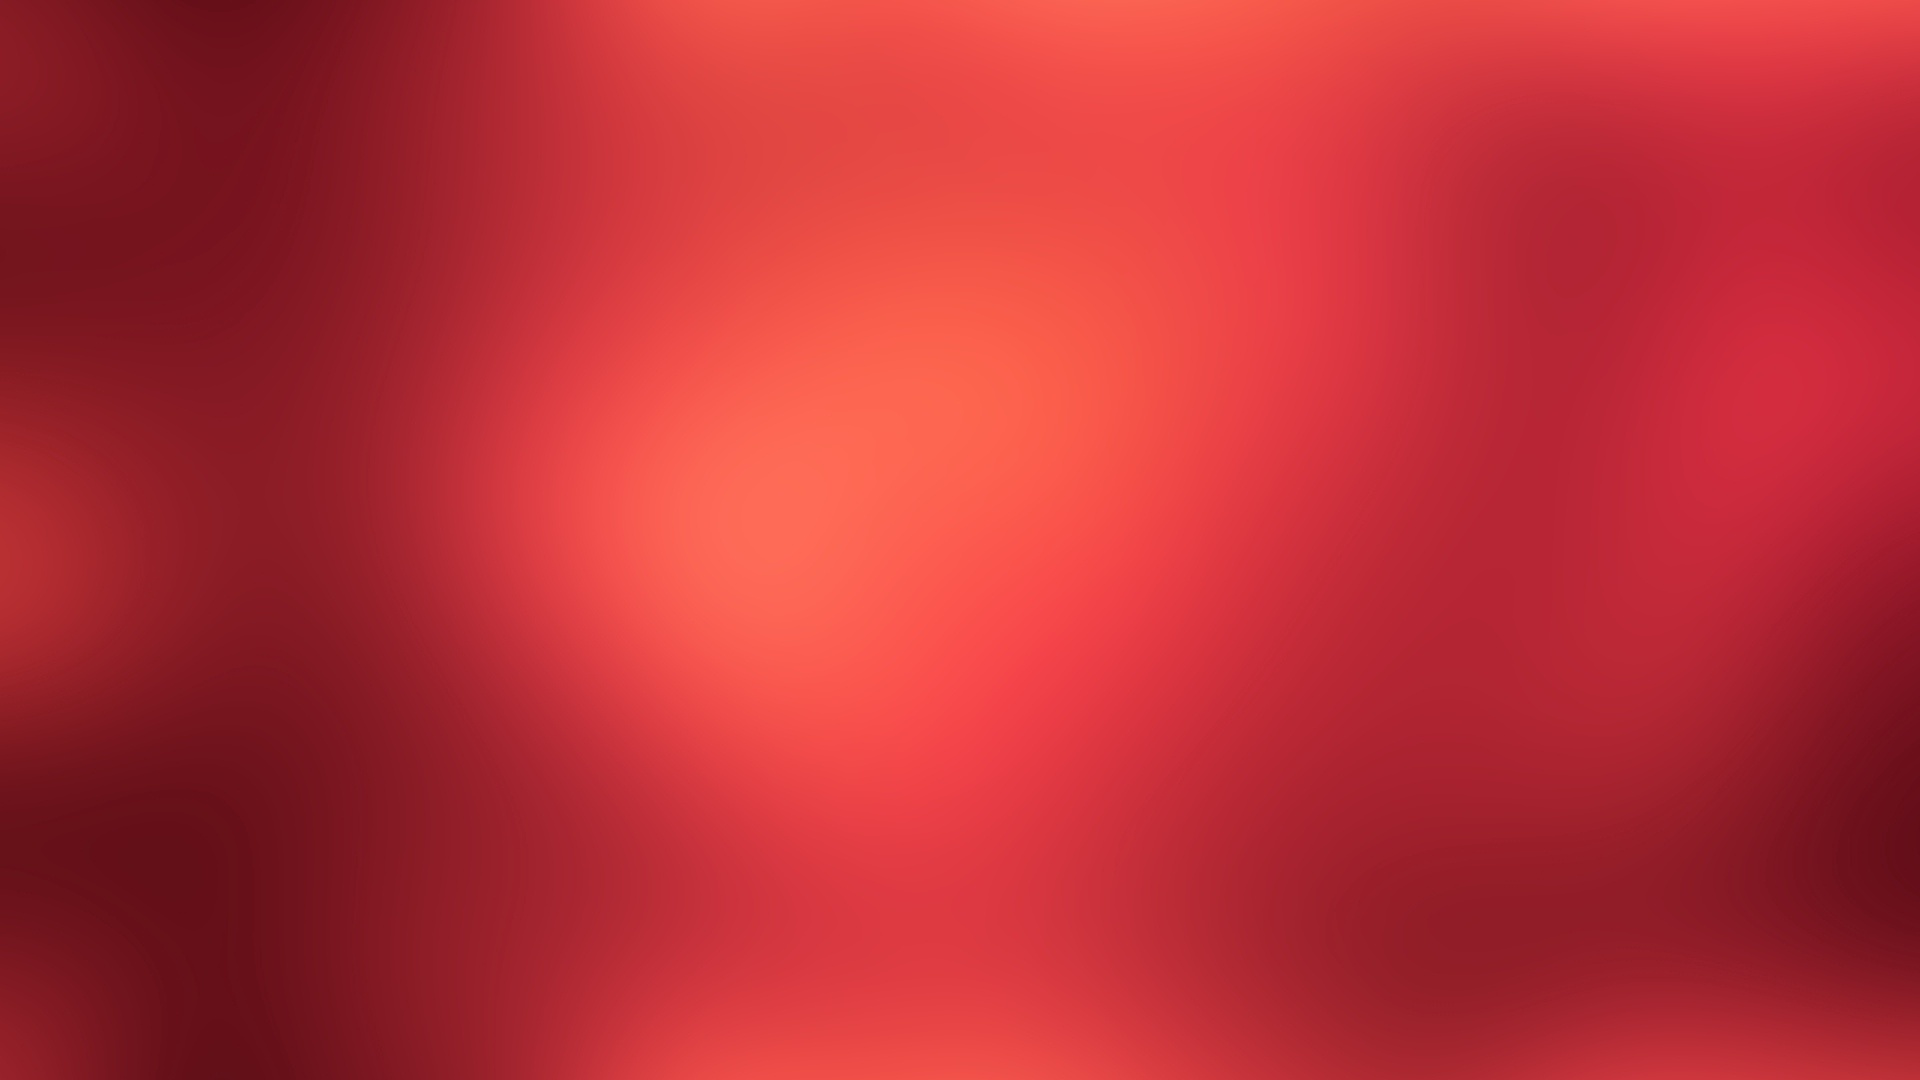 Solid Red wallpaper theme